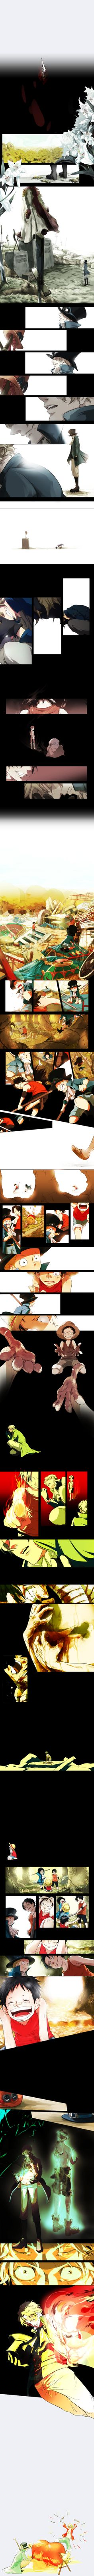 Tags: Anime, Fire, Sunflower, Grave, ONE PIECE, Monkey D. Luffy, Lily